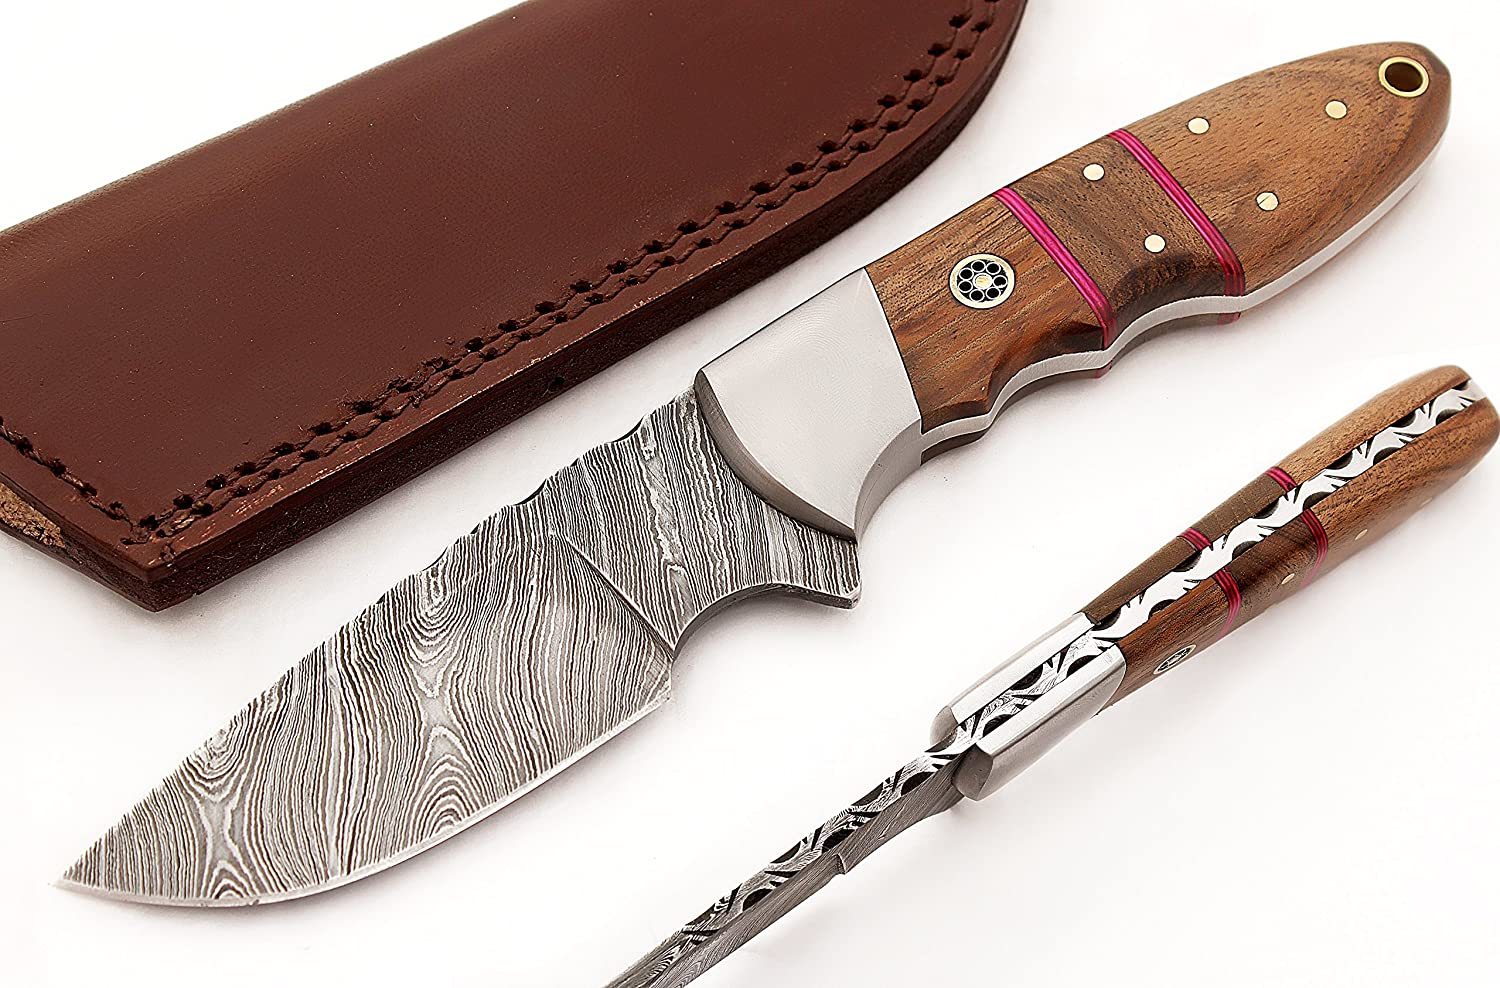 Condor Tool and Knife Nessmuk Knife, Wood Handle, Leather Sheath